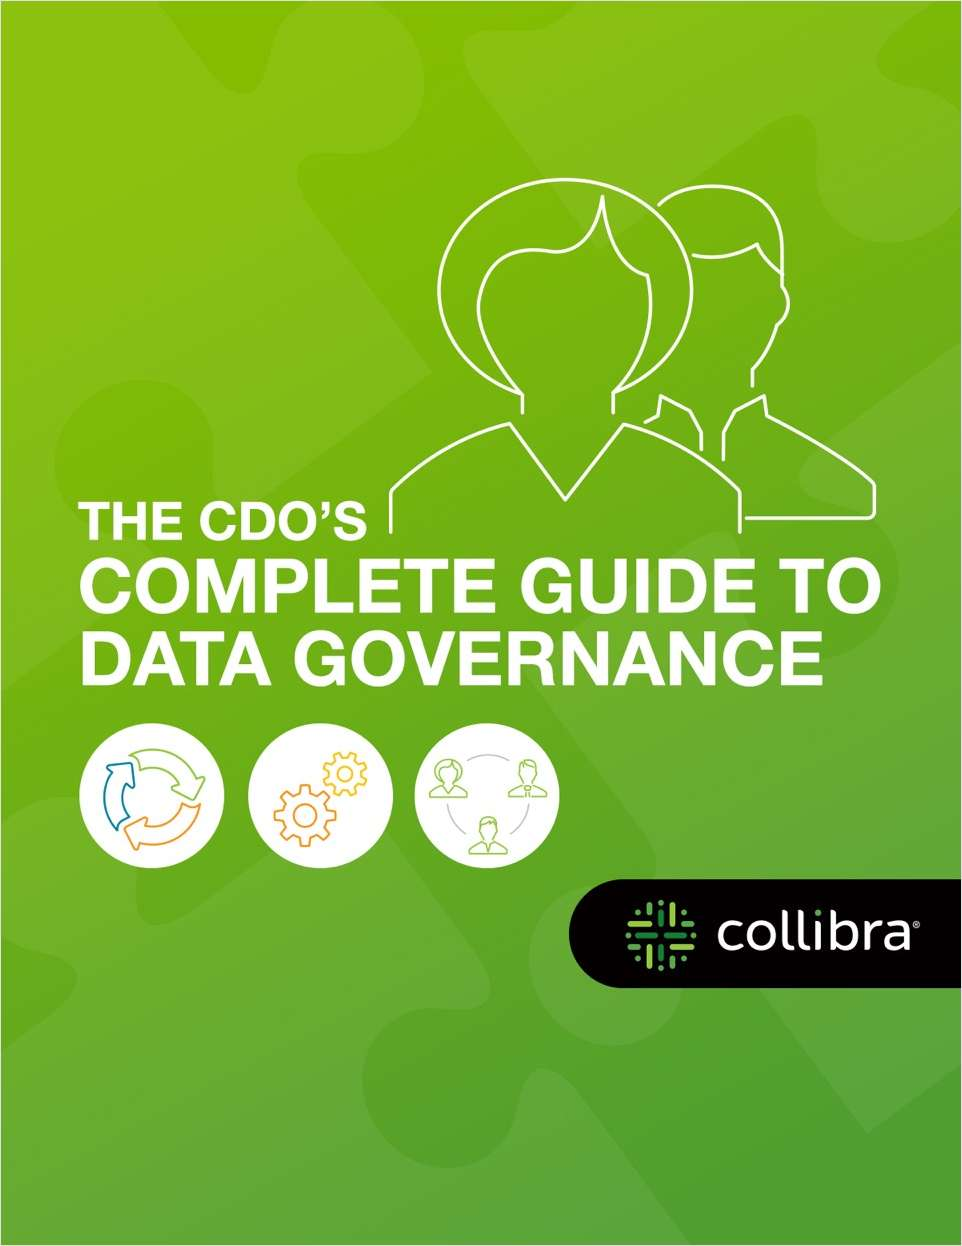 The CDO's Complete Guide to Data Governance